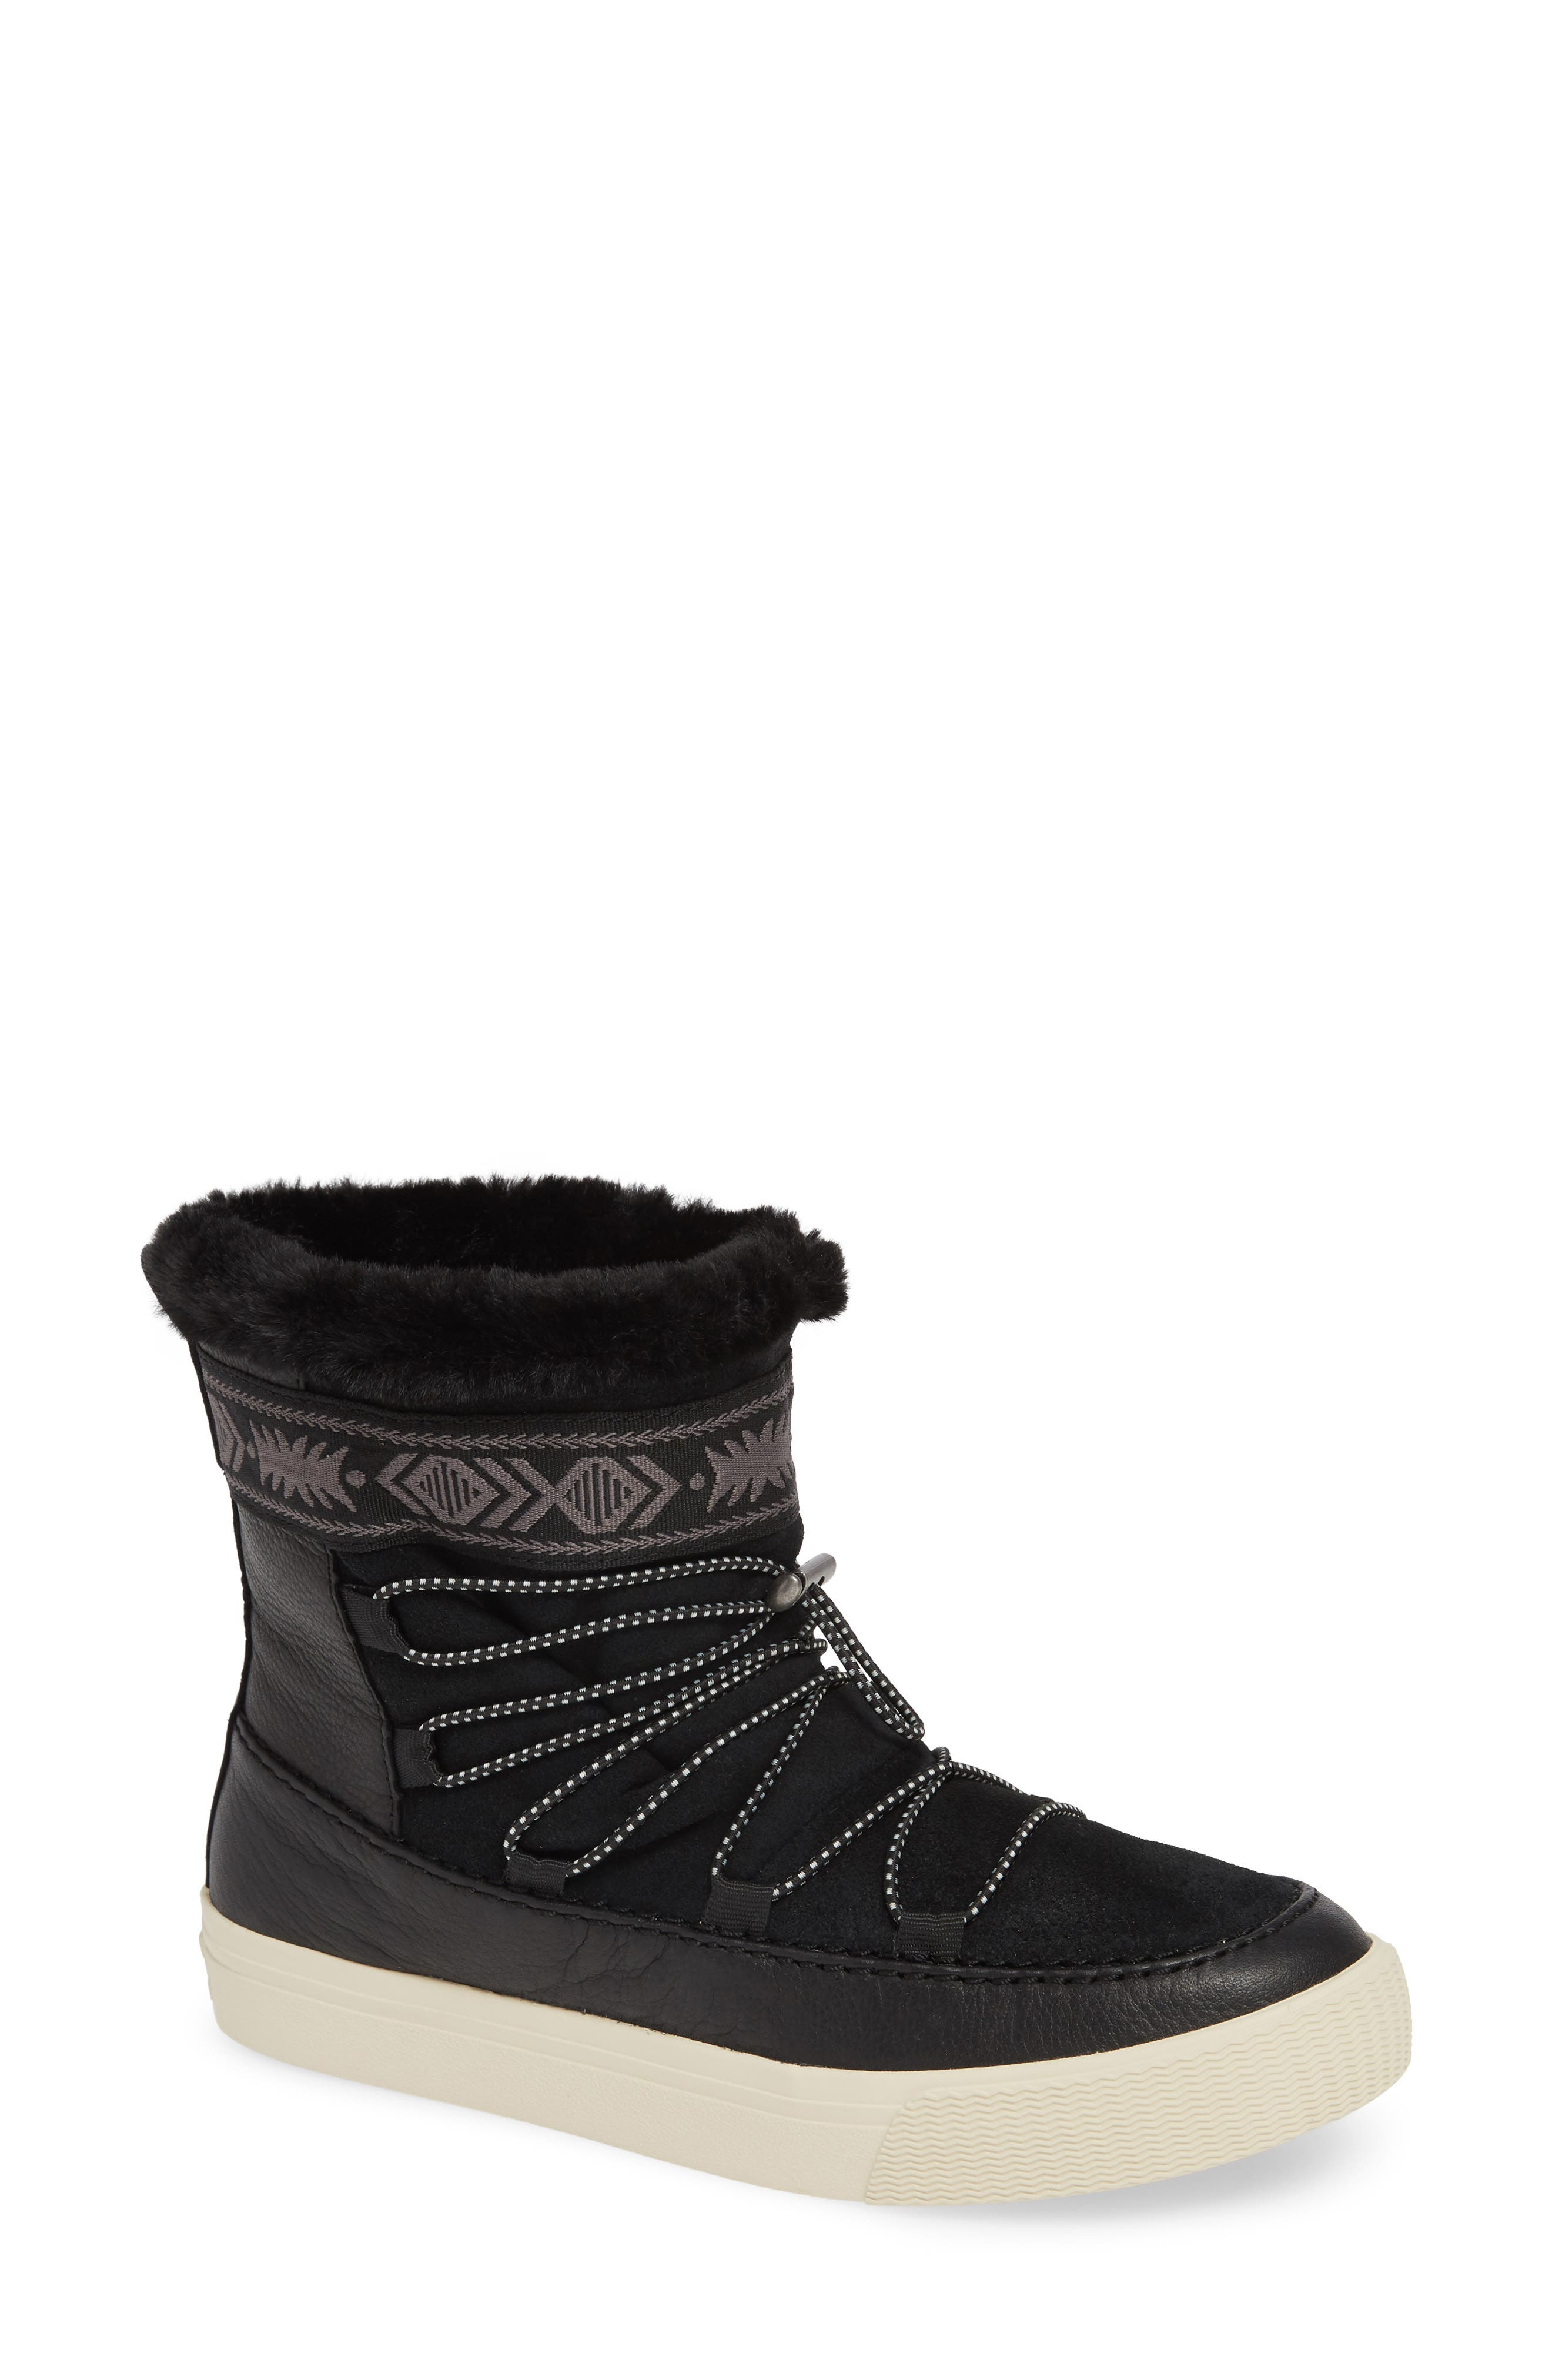 Toms Alpine Boot, Black